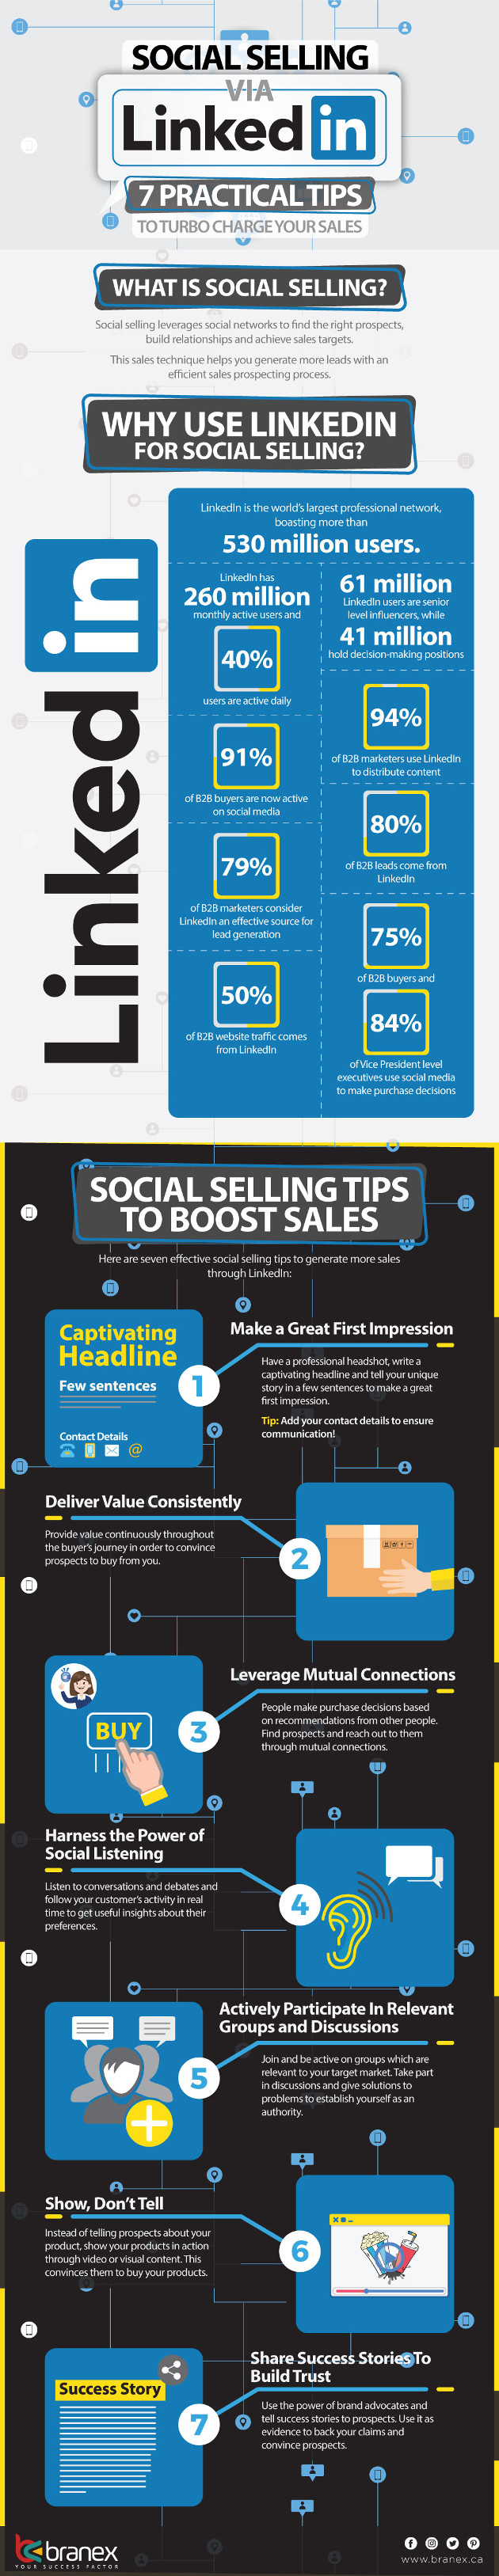 https://www.marketingprofs.com/chirp/2018/39833/social-selling-for-linkedin-seven-practical-tips-infographic?adref=nlt100418